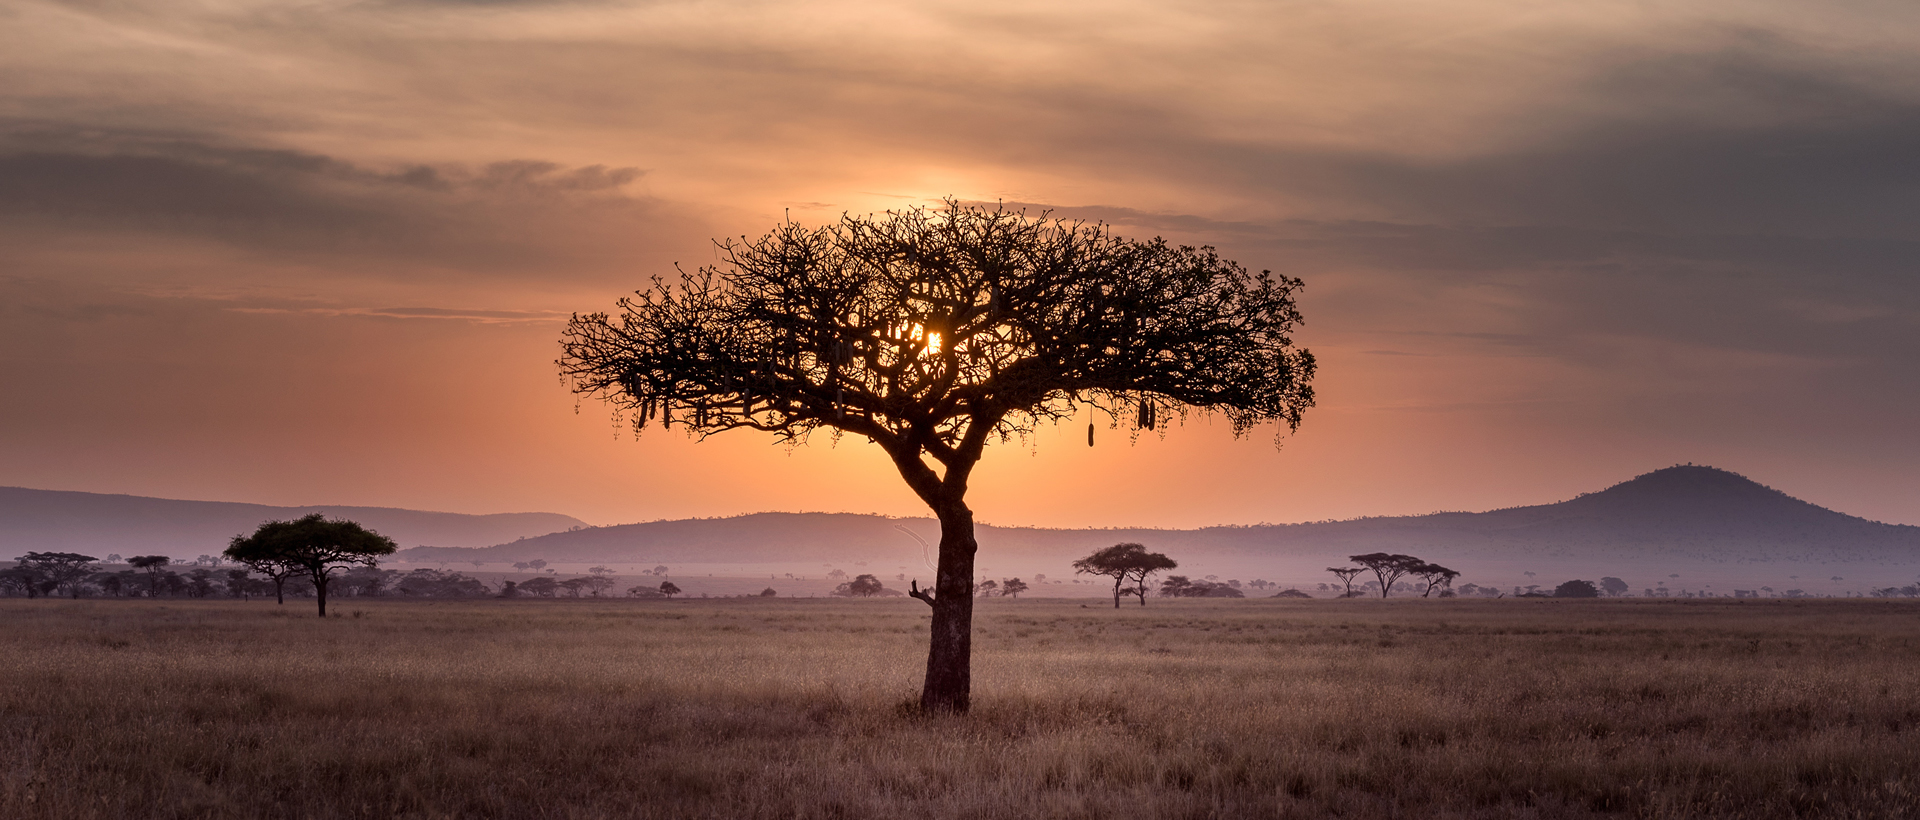 What is the Gospel? Pastor Lameck Byonge traces the holsitc story of the Gospel from the Garden of Eden to today of God's faithful work to reconciliation.